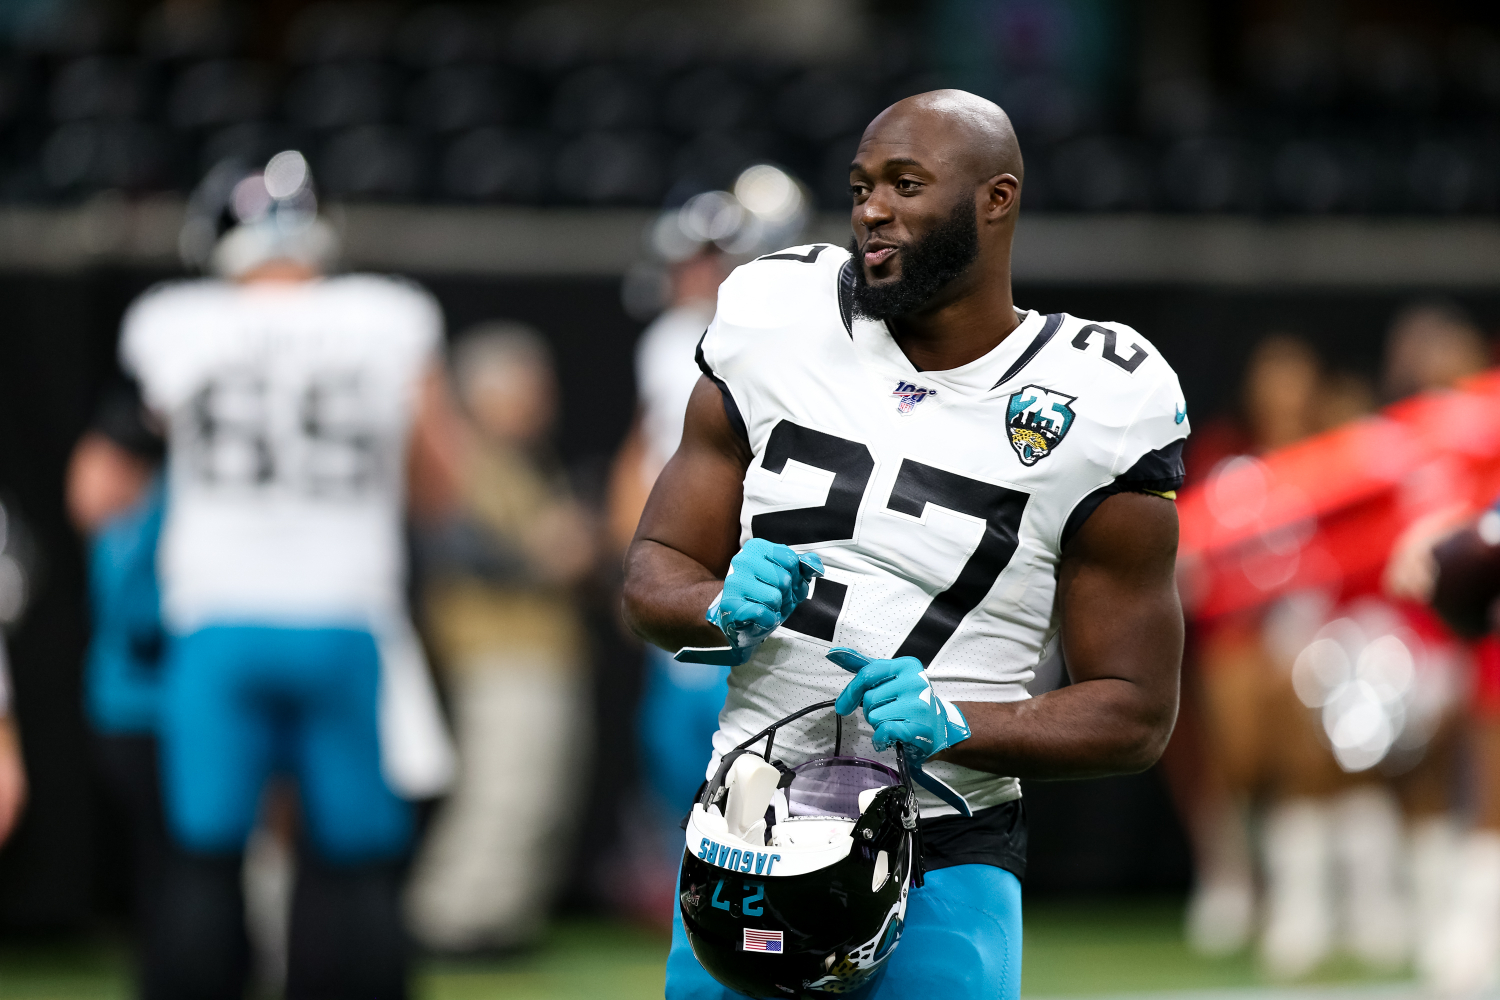 Former Jacksonville Jaguars running back Leonard Fournette may have been a victim of a revolt by his teammates.